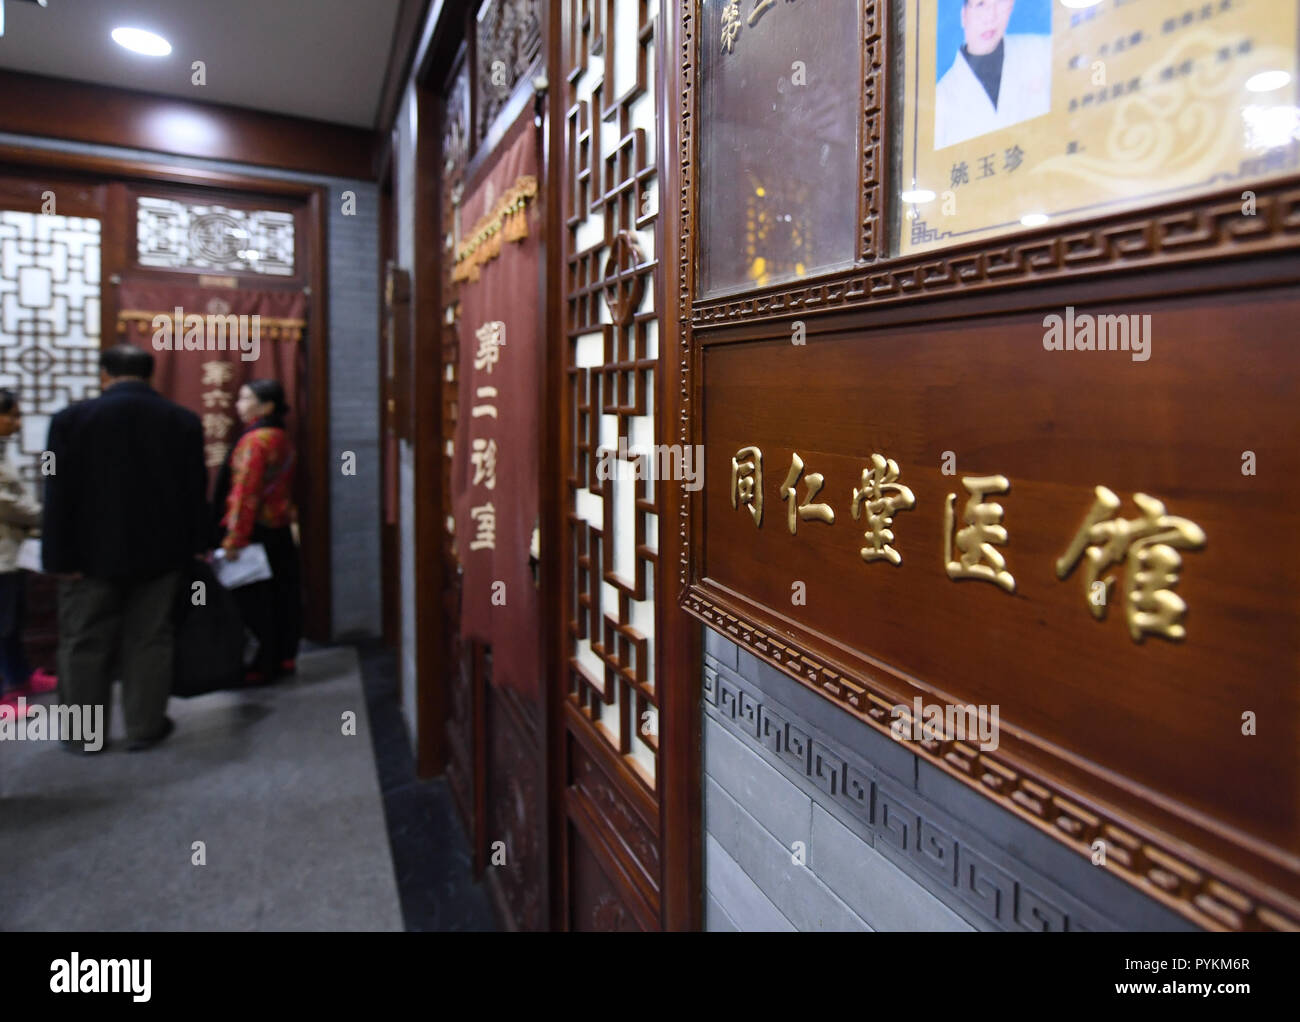 Beijing, China. 25th Oct, 2018. Citizens wait for seeing doctors at a clinic of Tongrentang, a pharmaceutical company with a history of more than 300 years, in Beijing, capital of China, Oct. 25, 2018. Established in 1669, Tongrentang is now a leading traditional Chinese medicine producer and retailer in China, and has earned a worldwide reputation. It has registered its brand in more than 100 countries and regions. Credit: Zhang Chenlin/Xinhua/Alamy Live News - Stock Image